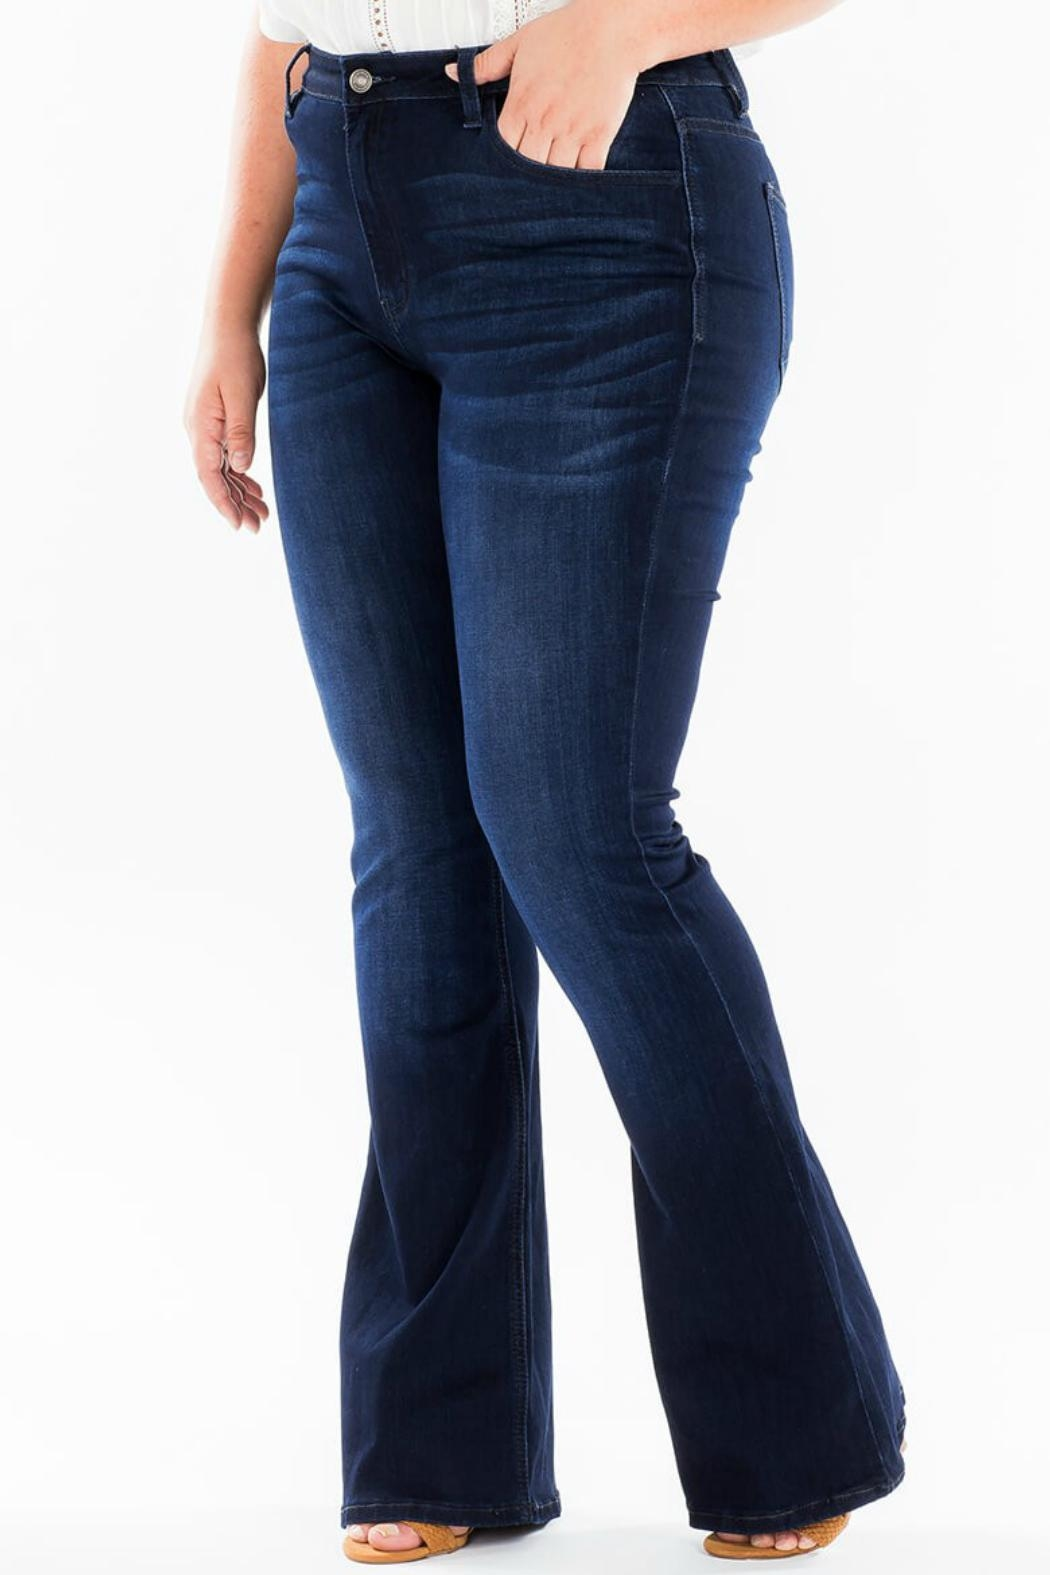 KanCan High-Rise Flare Stretch-Jean - Back Cropped Image